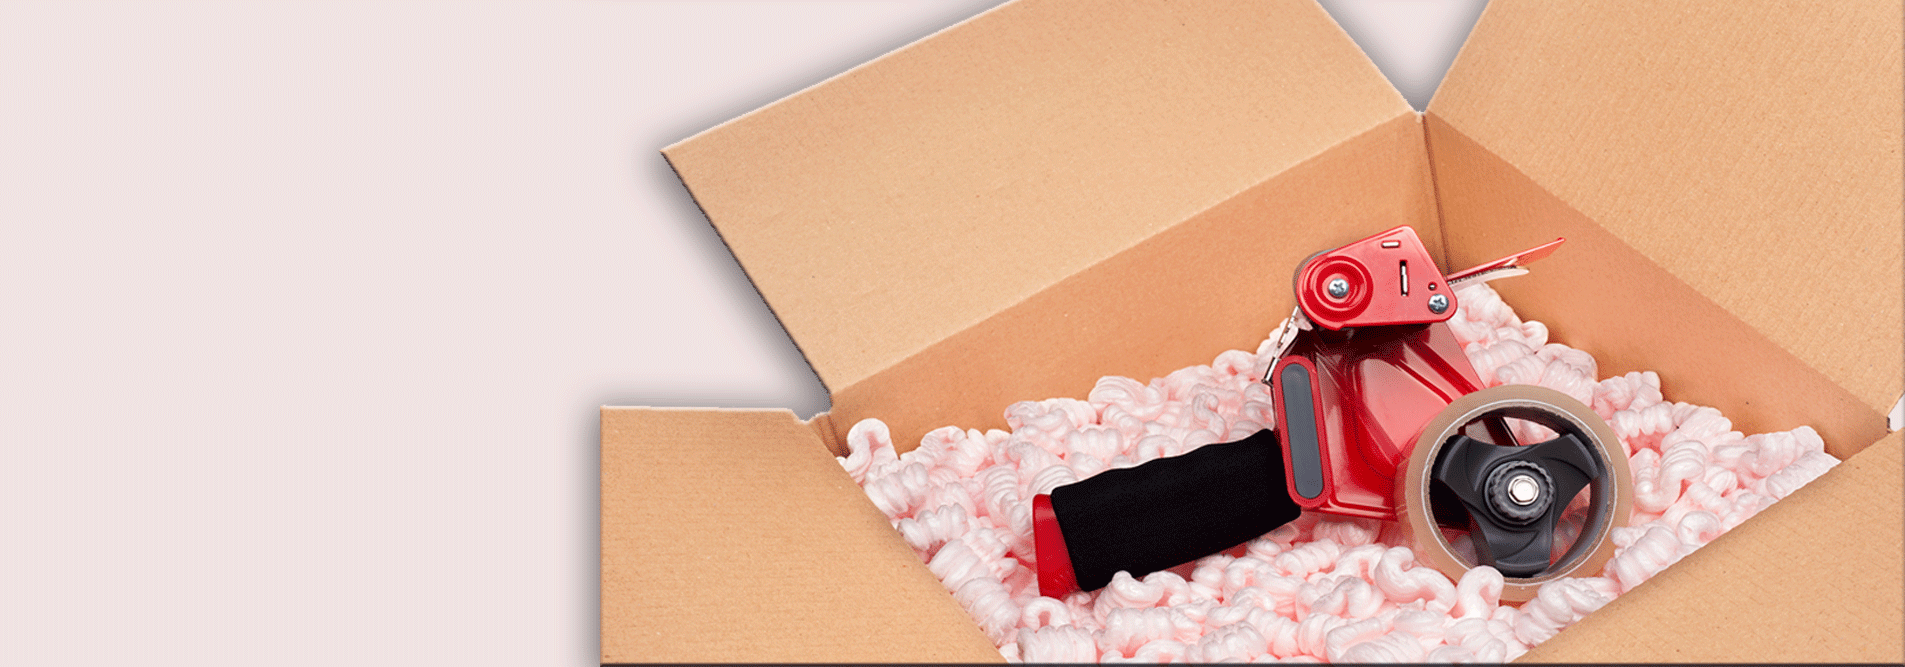 Shipping and Printing Services in Northern Colorado - Mail N